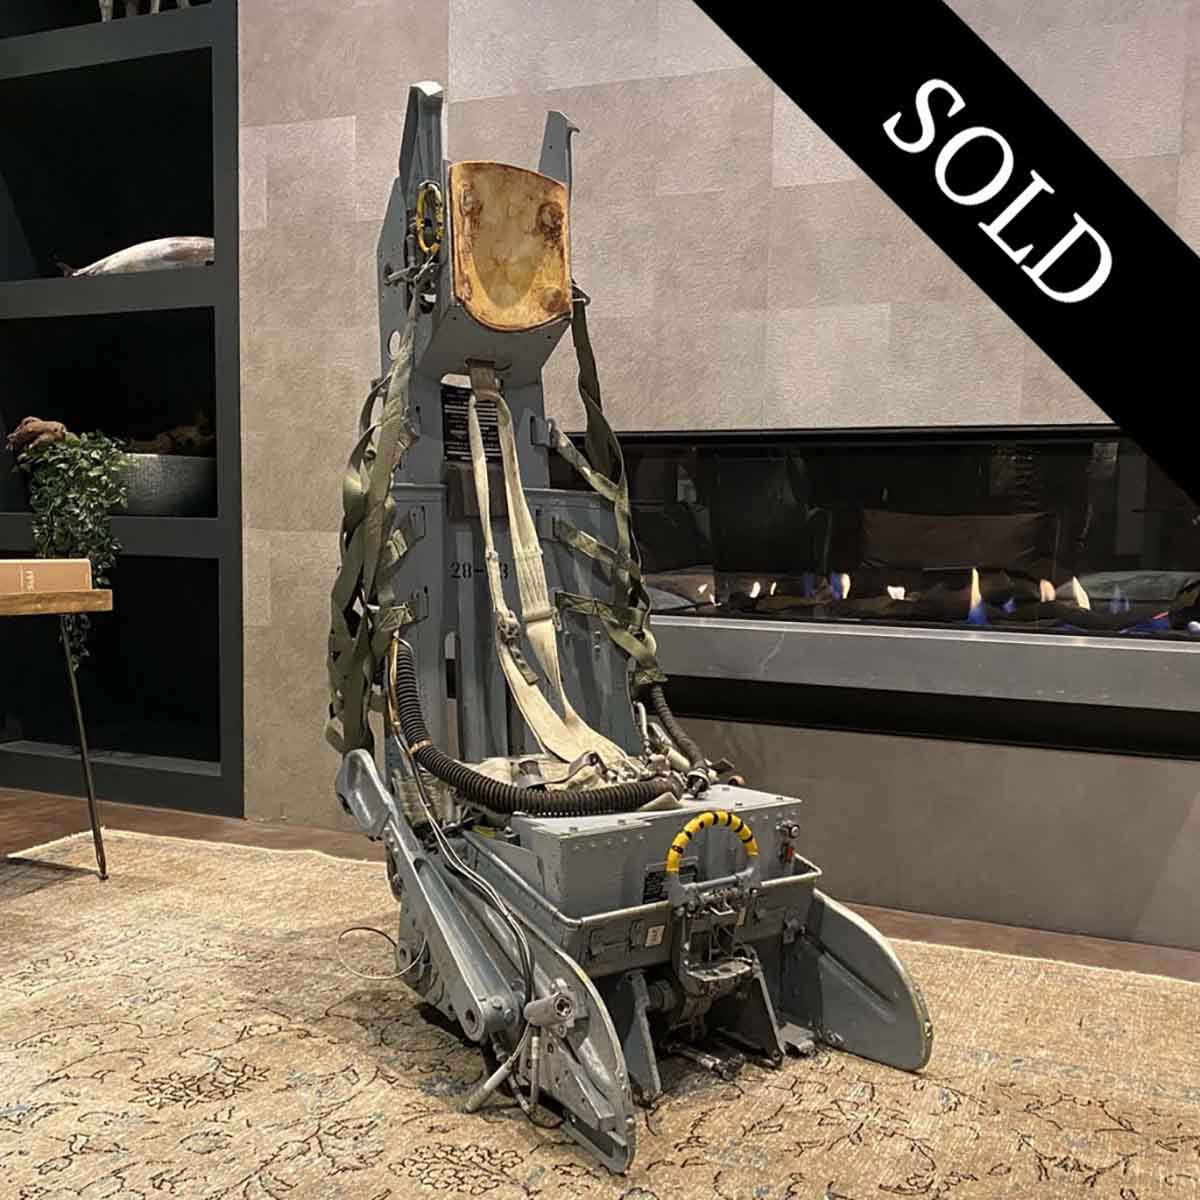 Lockheed Ejection seat in front of fireplace.